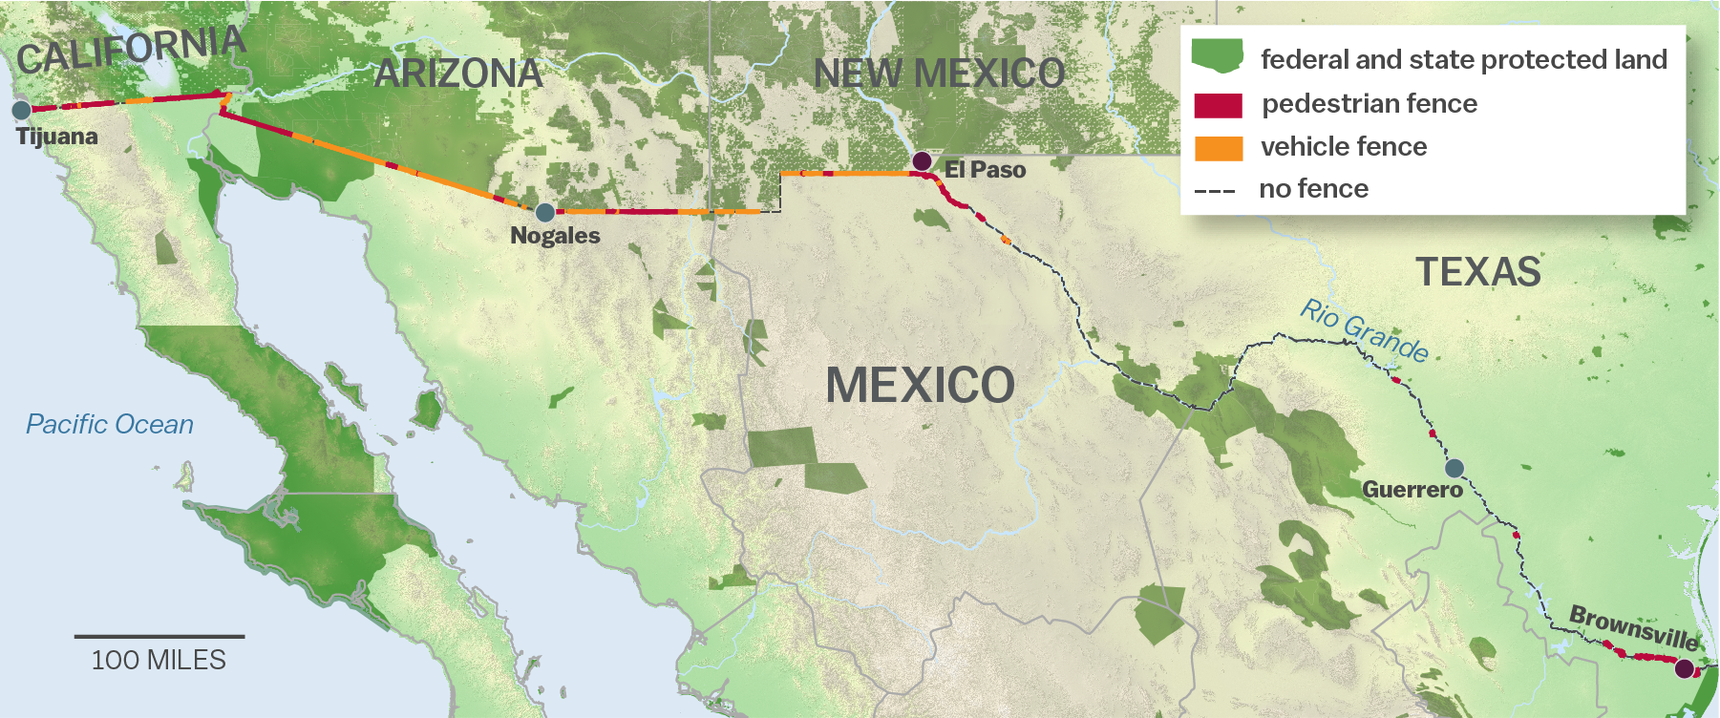 us_protected_lands_border_mexico_map_vox.png